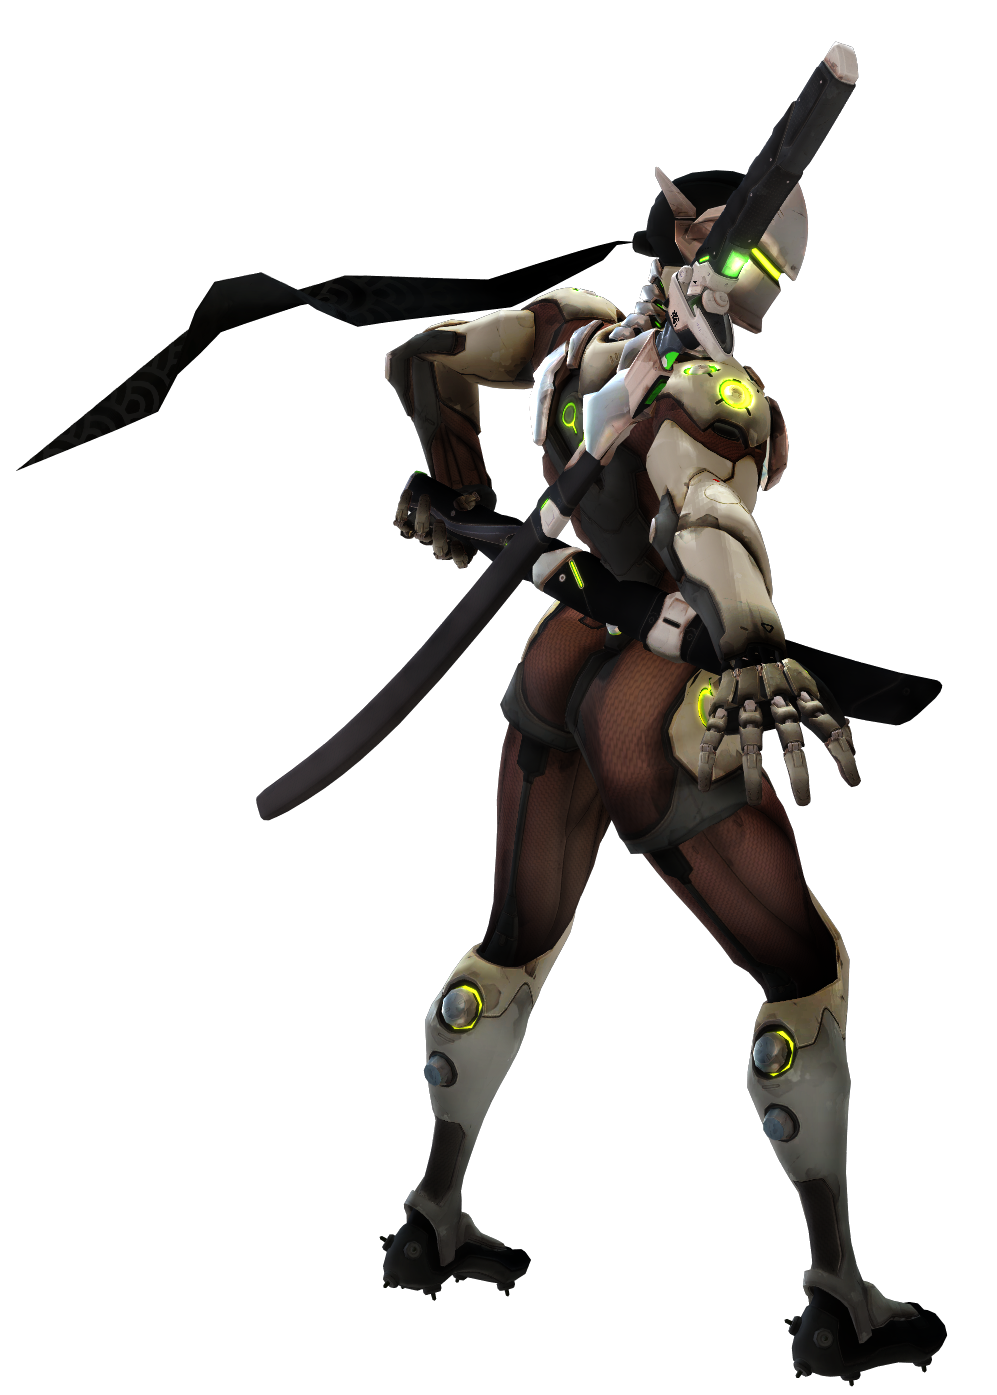 Genji overwatch png. Net for console players